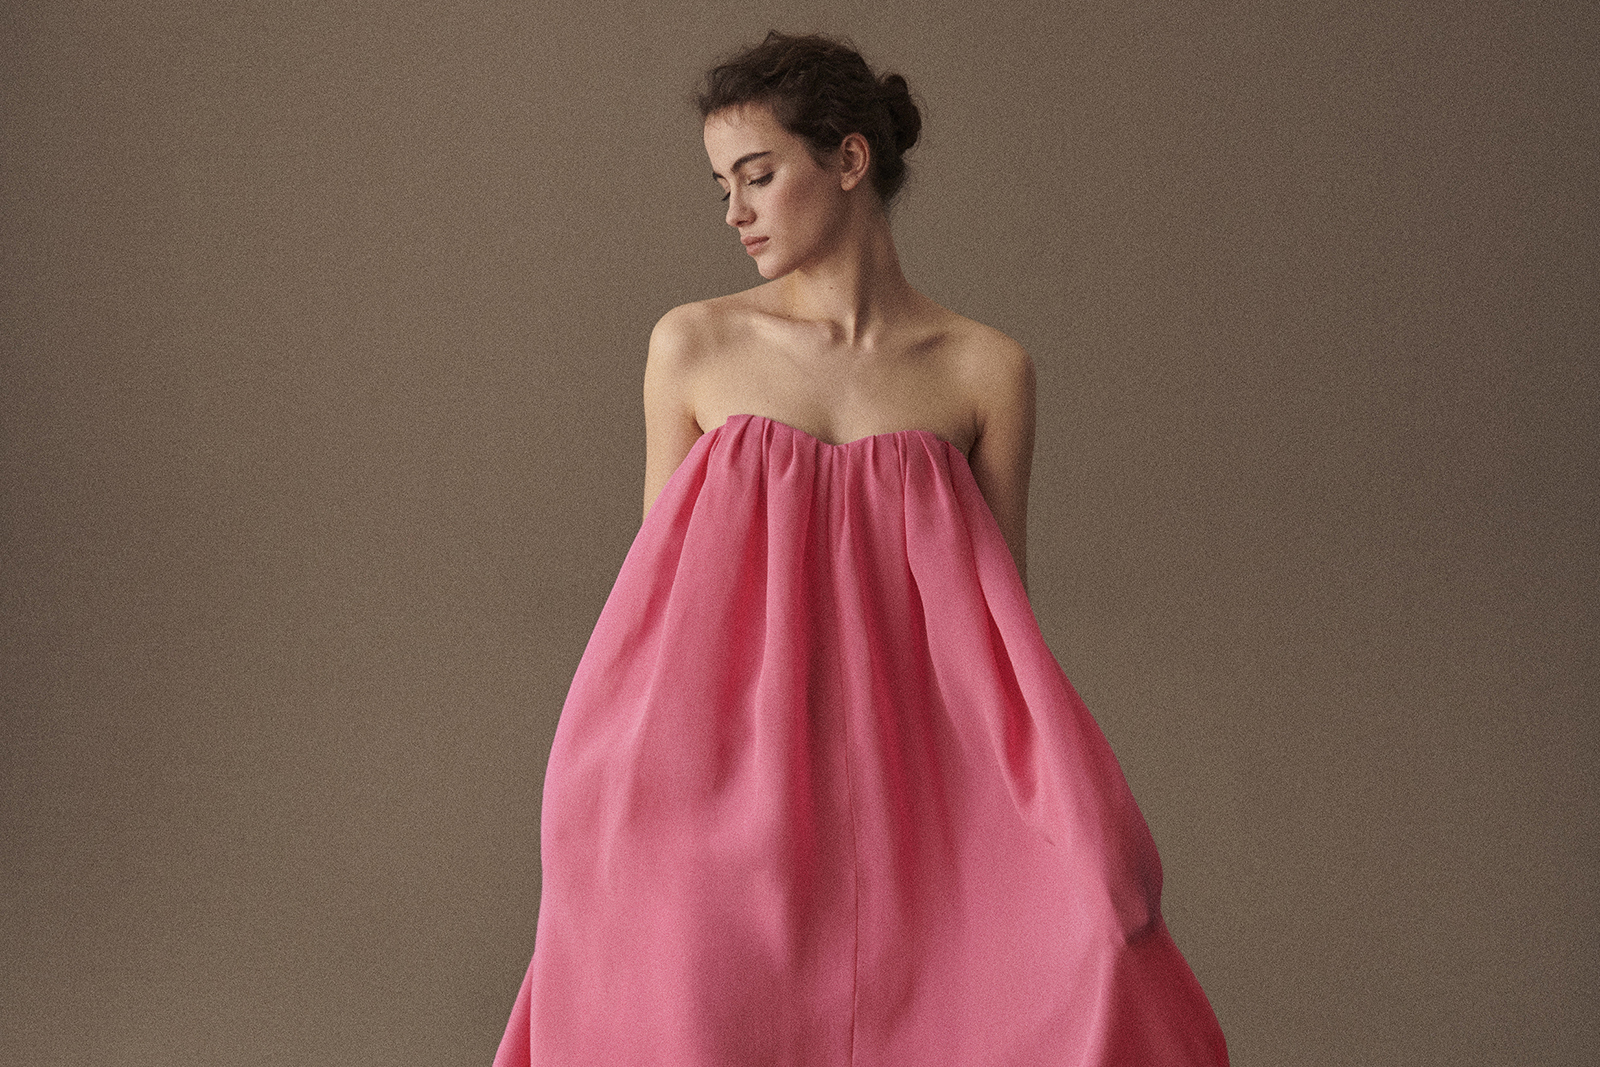 The Autumn-Winter 2019 collection from Delpozo